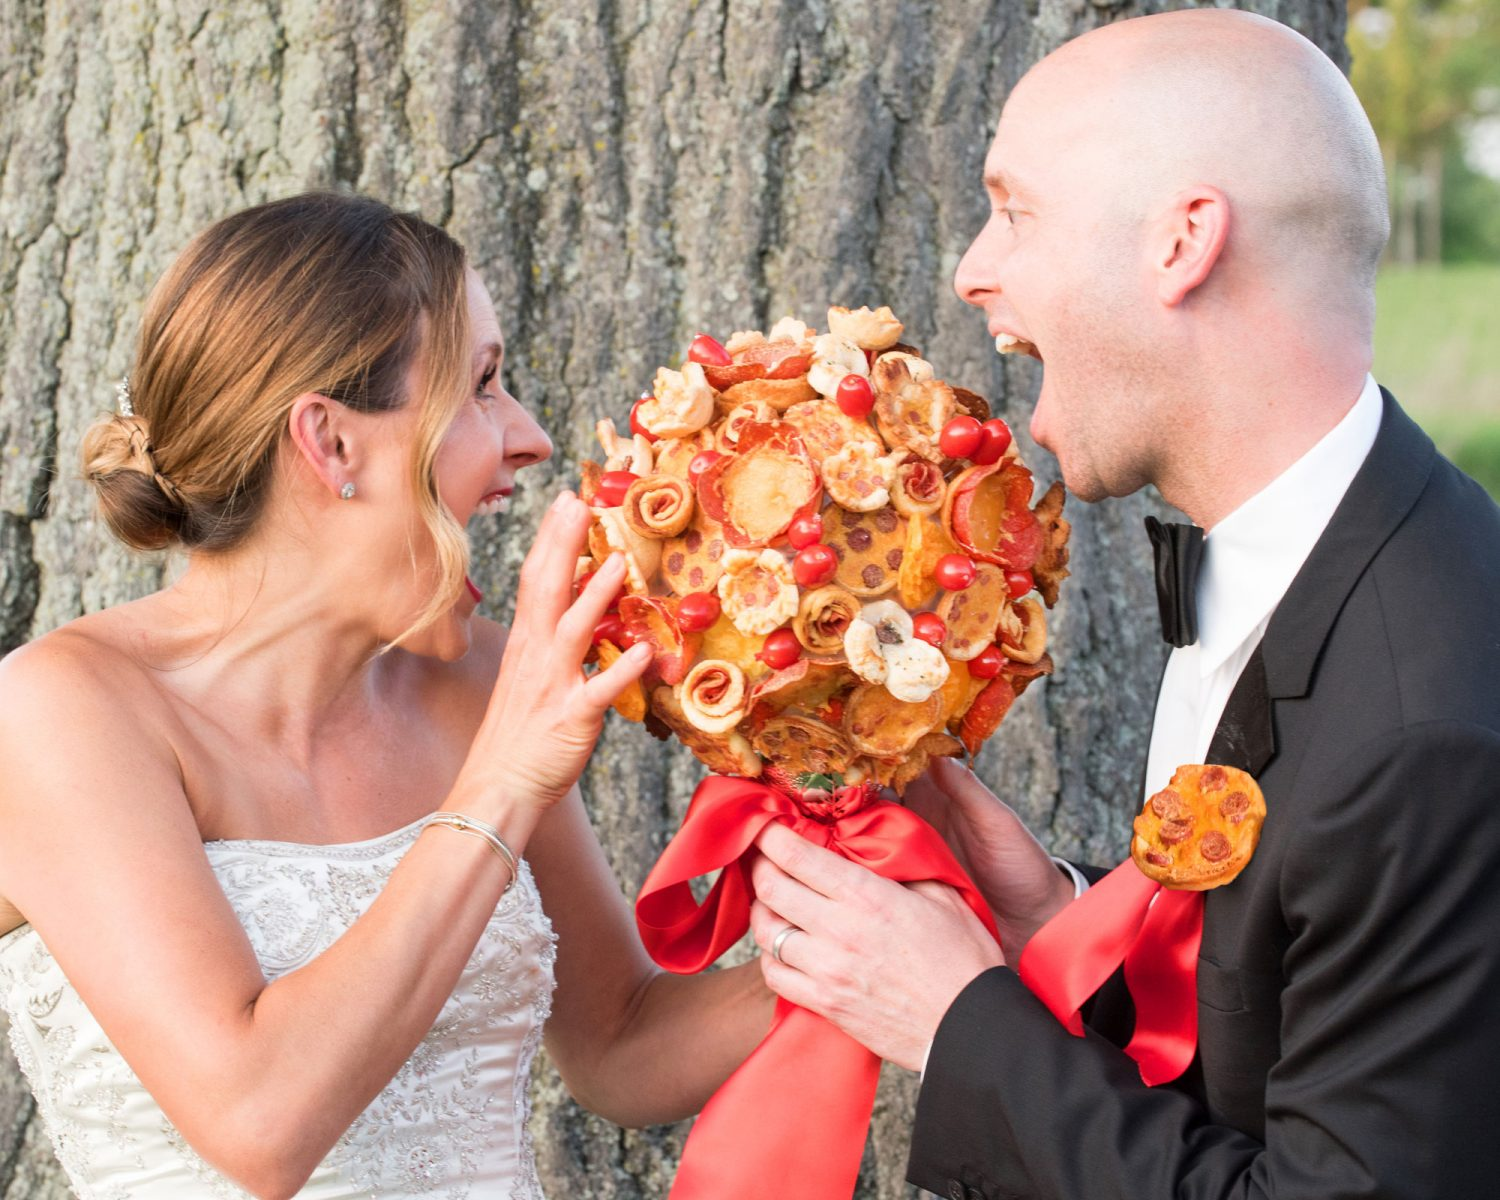 Pizza Bouquets and Boutonnieres Are Now a Thing and That's Amore